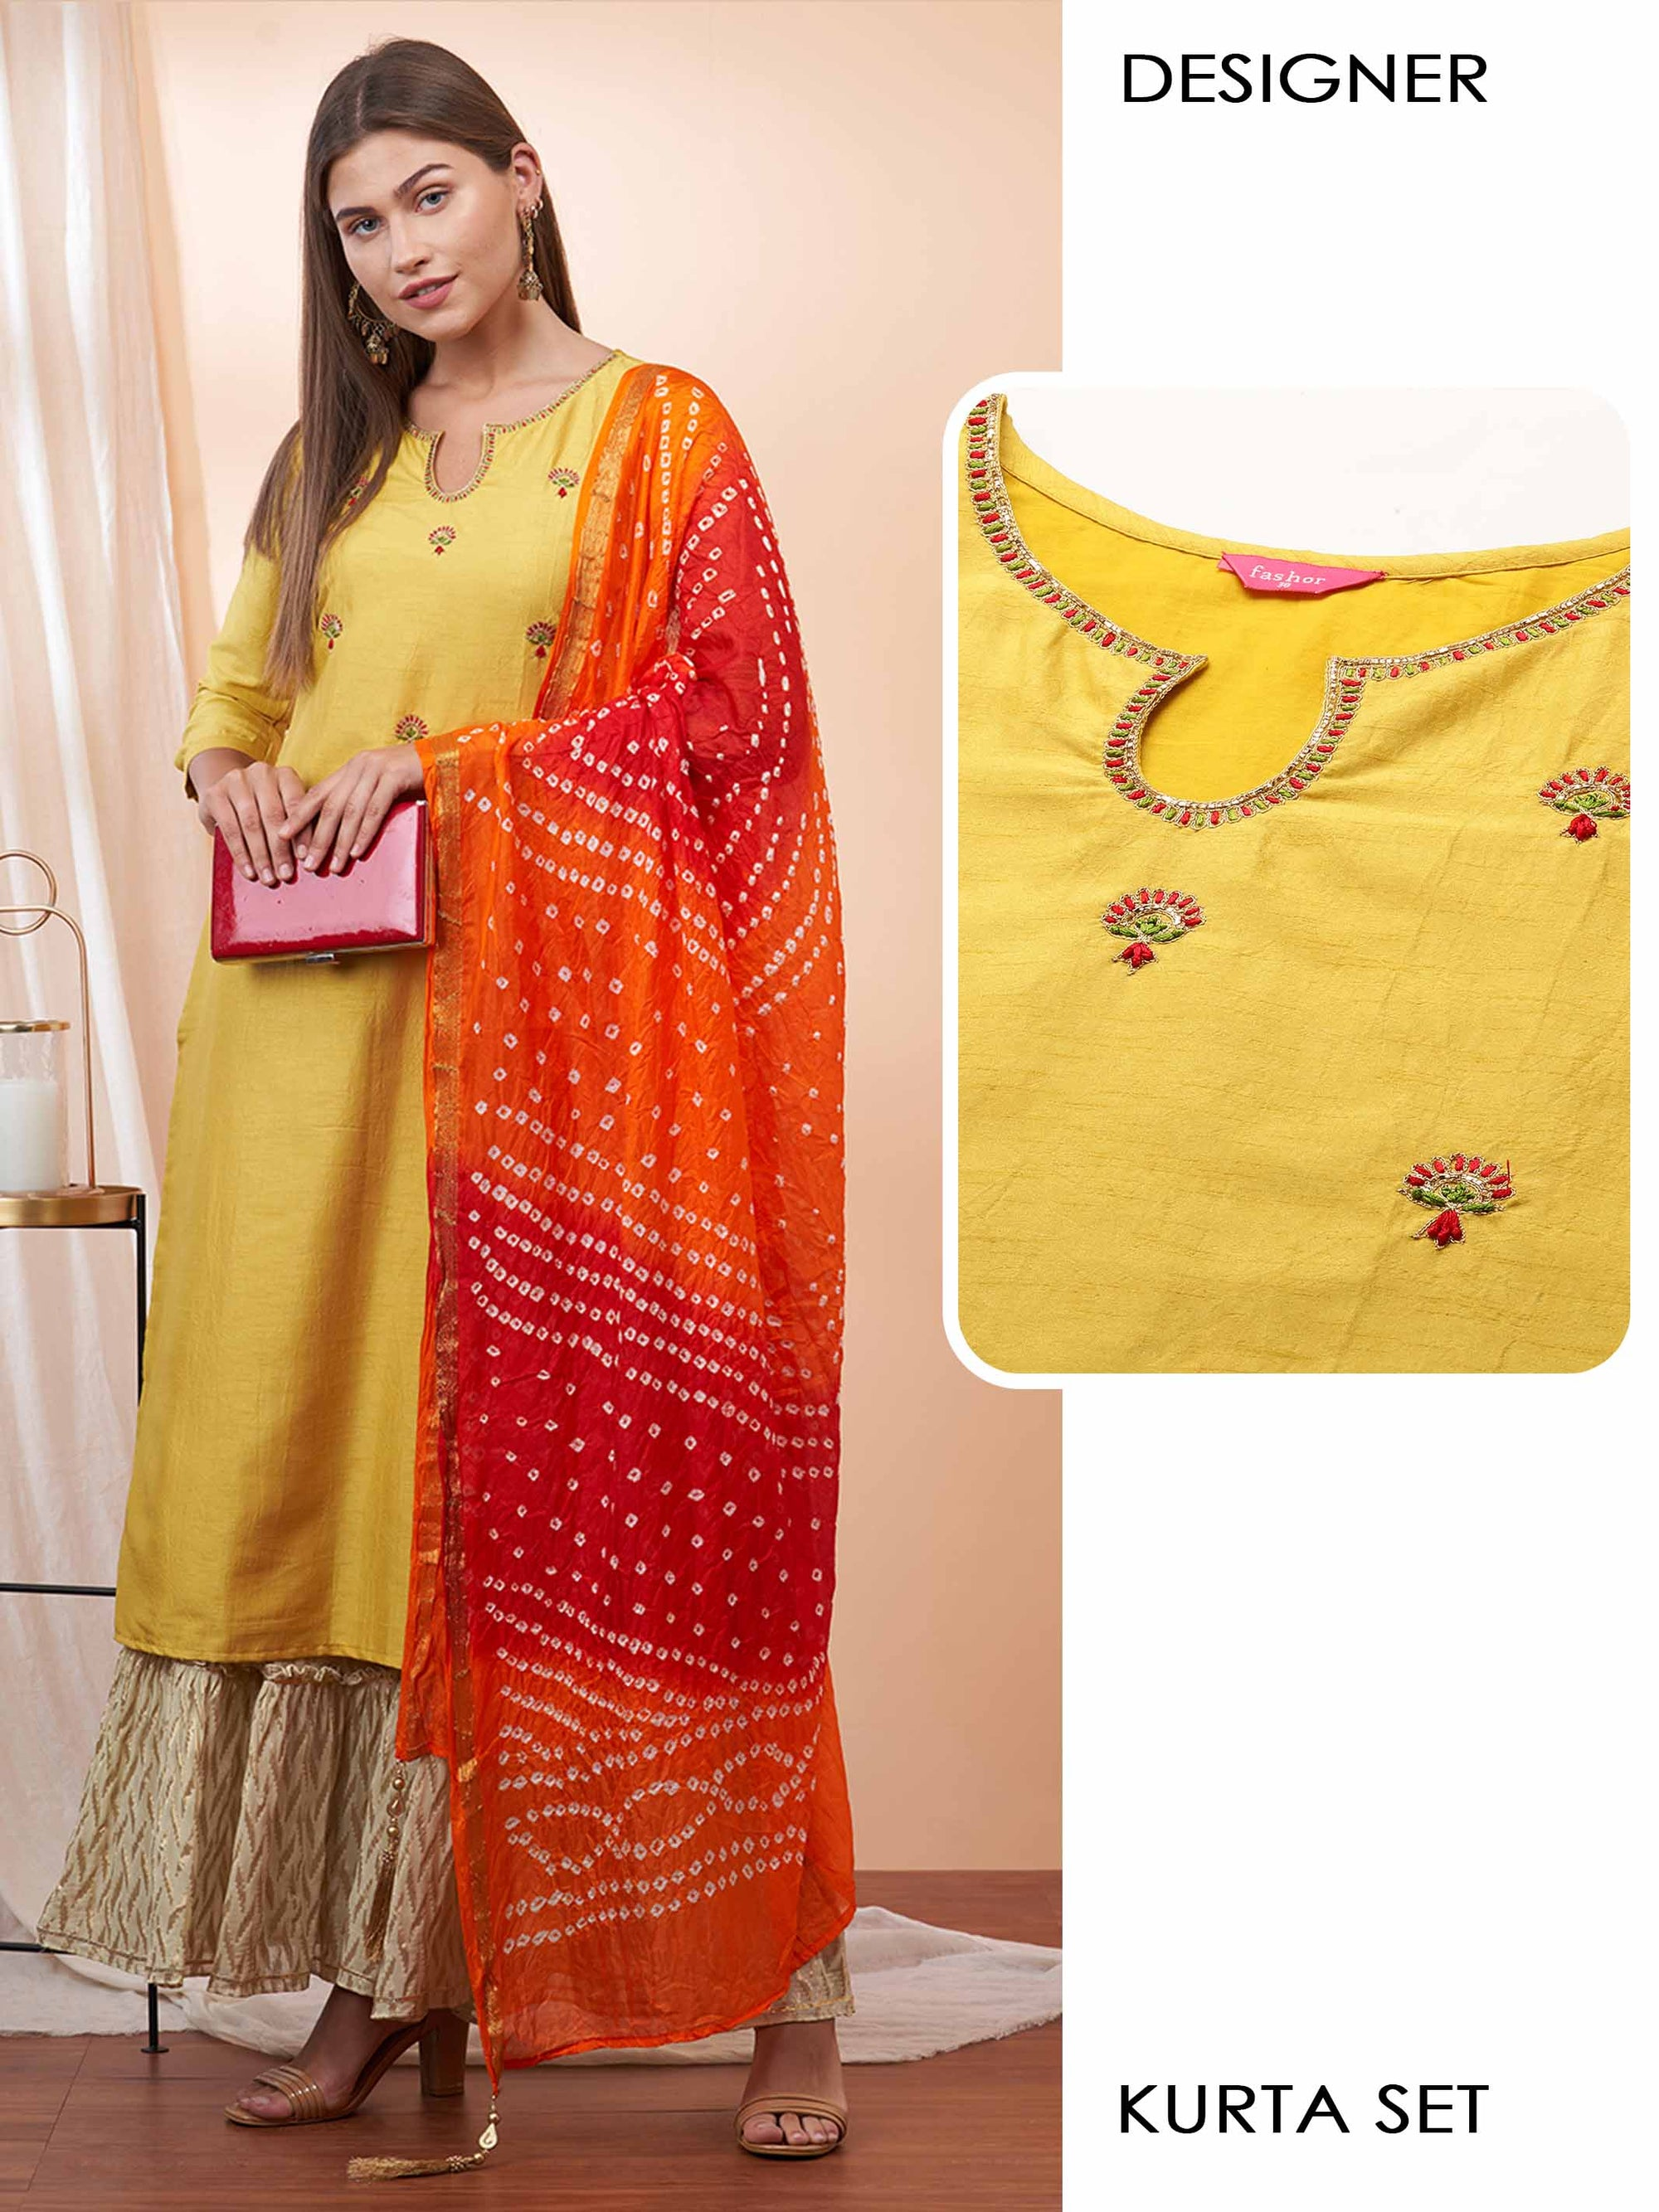 Ethnic Embroidered Straight Kurta with Zari Woven Sharara & Bandhani Printed Dupatta - Mustard